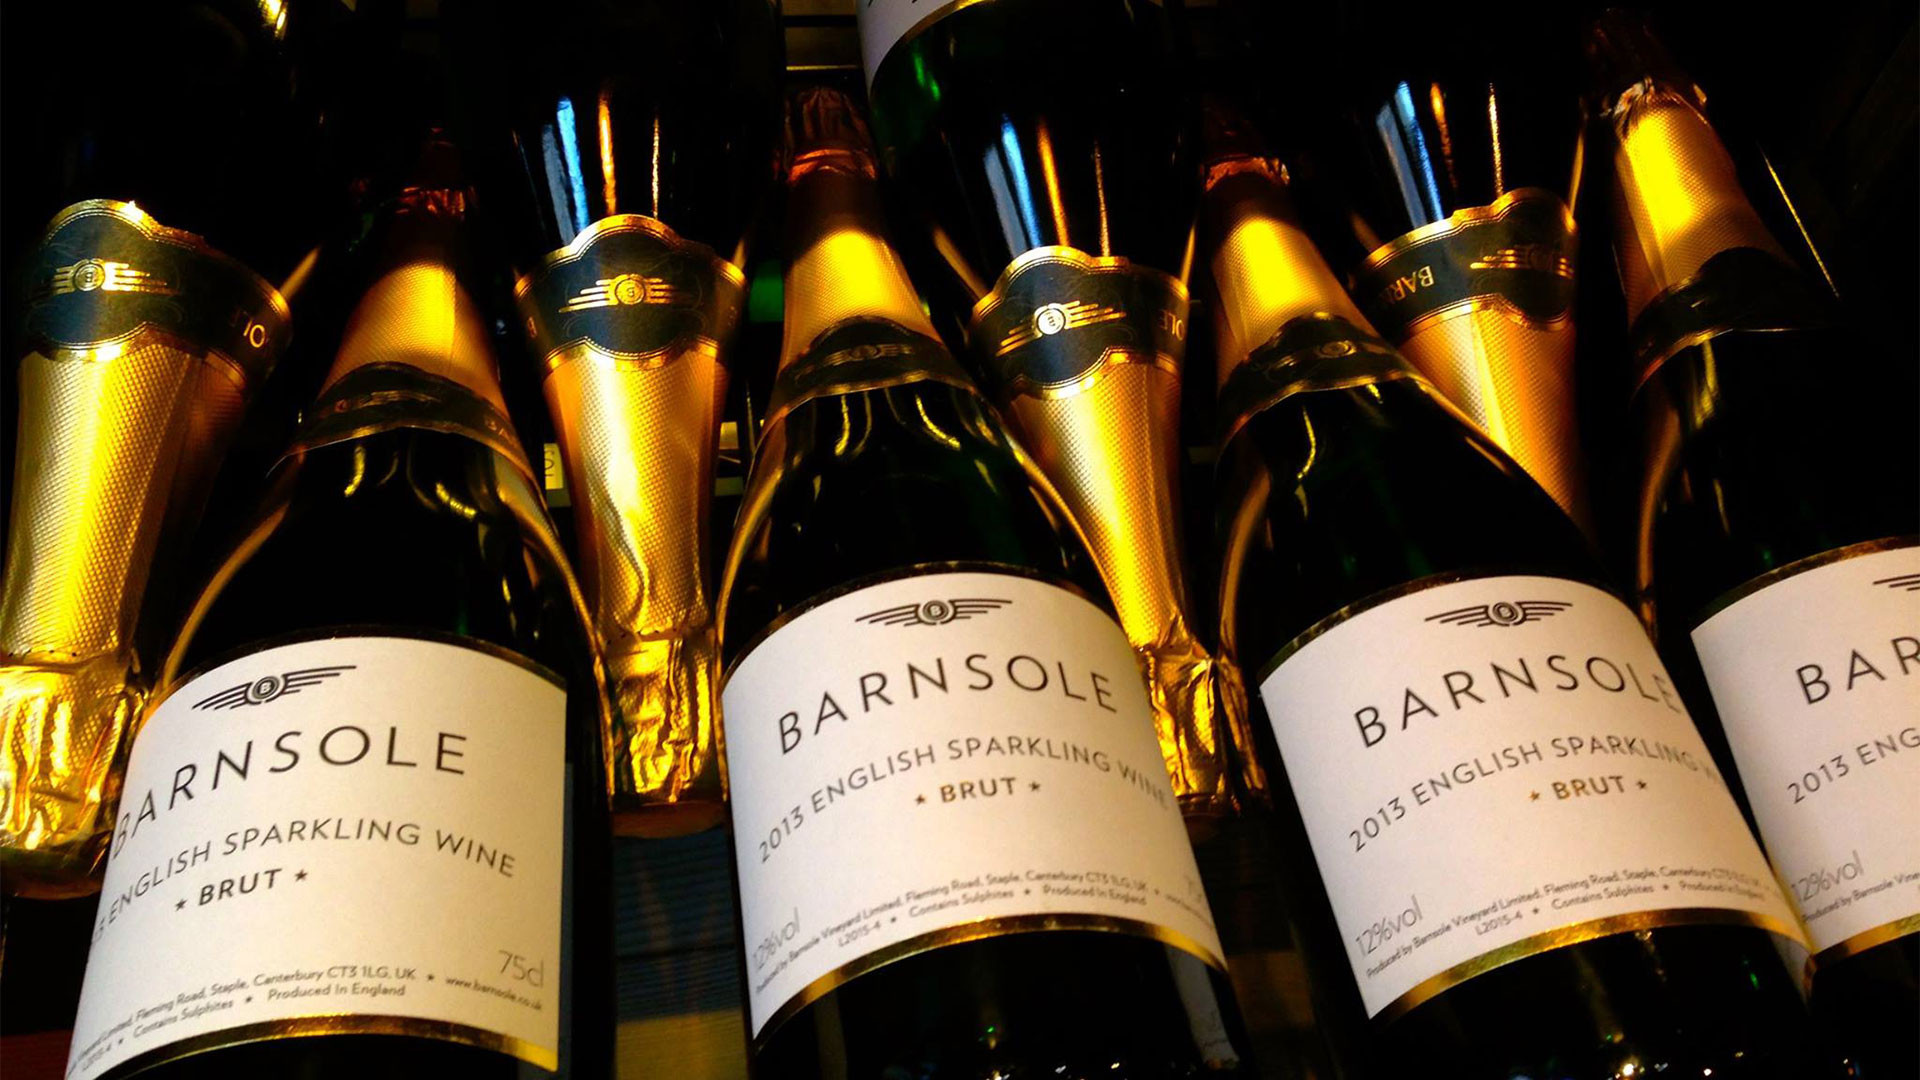 English sparkling wine from Barnsole Vineyards, Canterbury